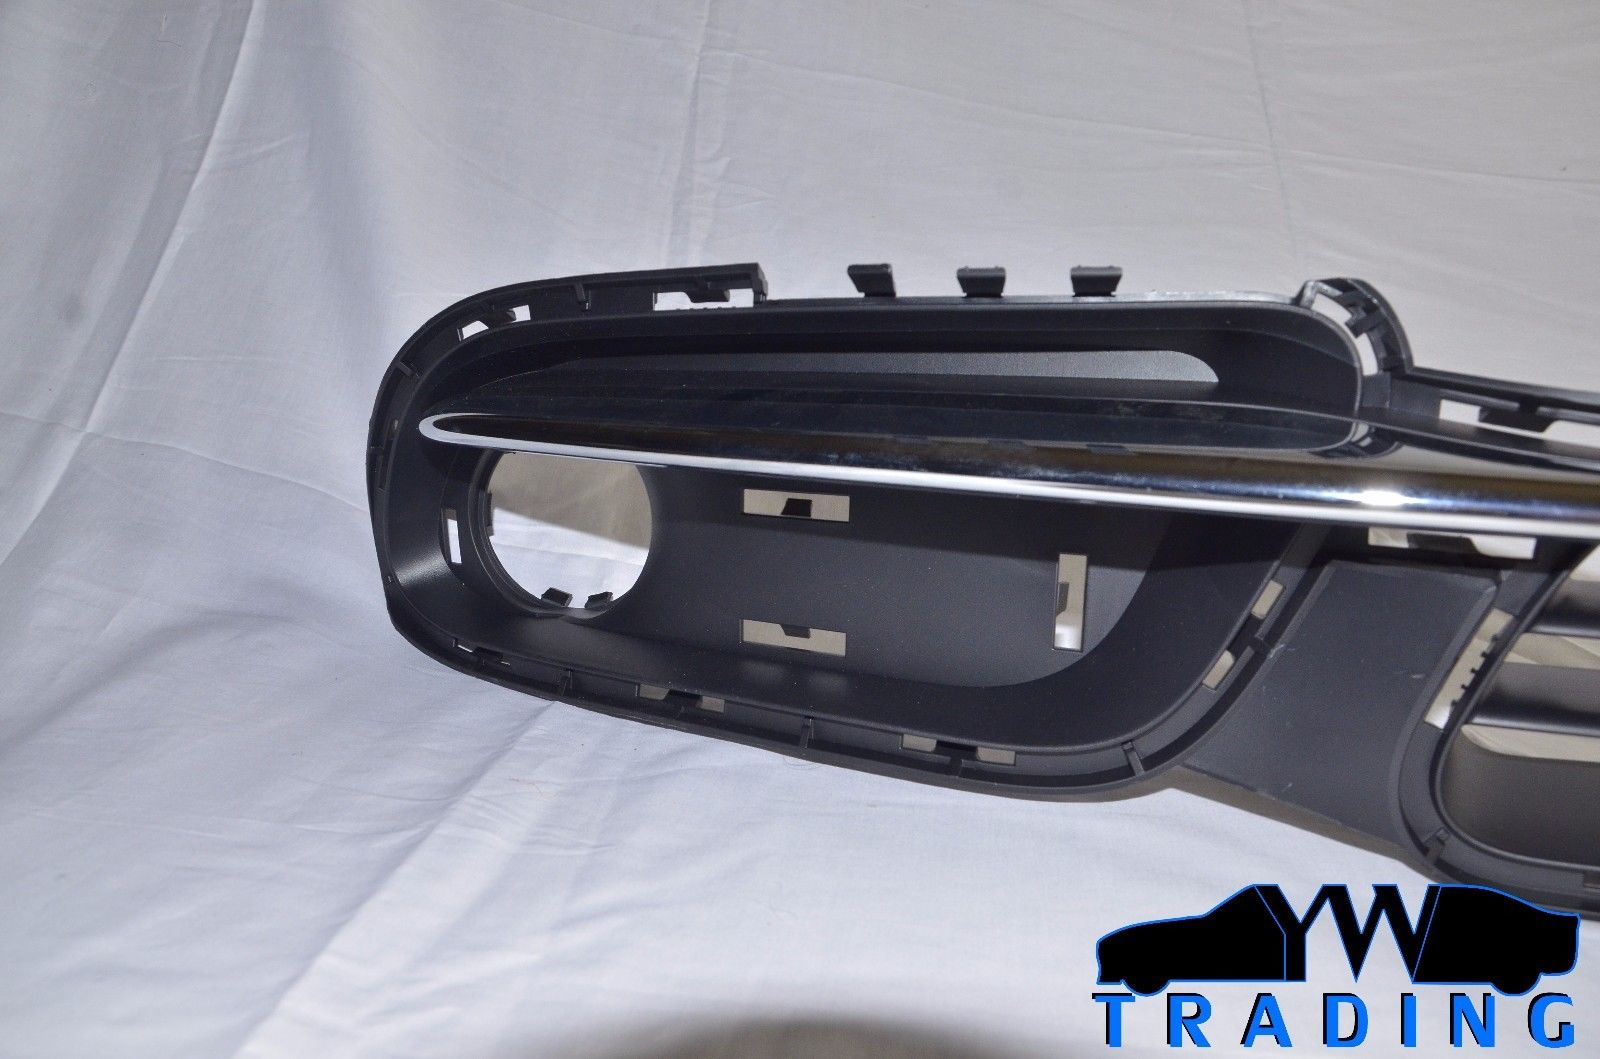 2011 - 2016 TOWN & COUNTRY OEM MOPAR LOWER GRILLE BLACK & CHROME 68100694AA 68100694AA